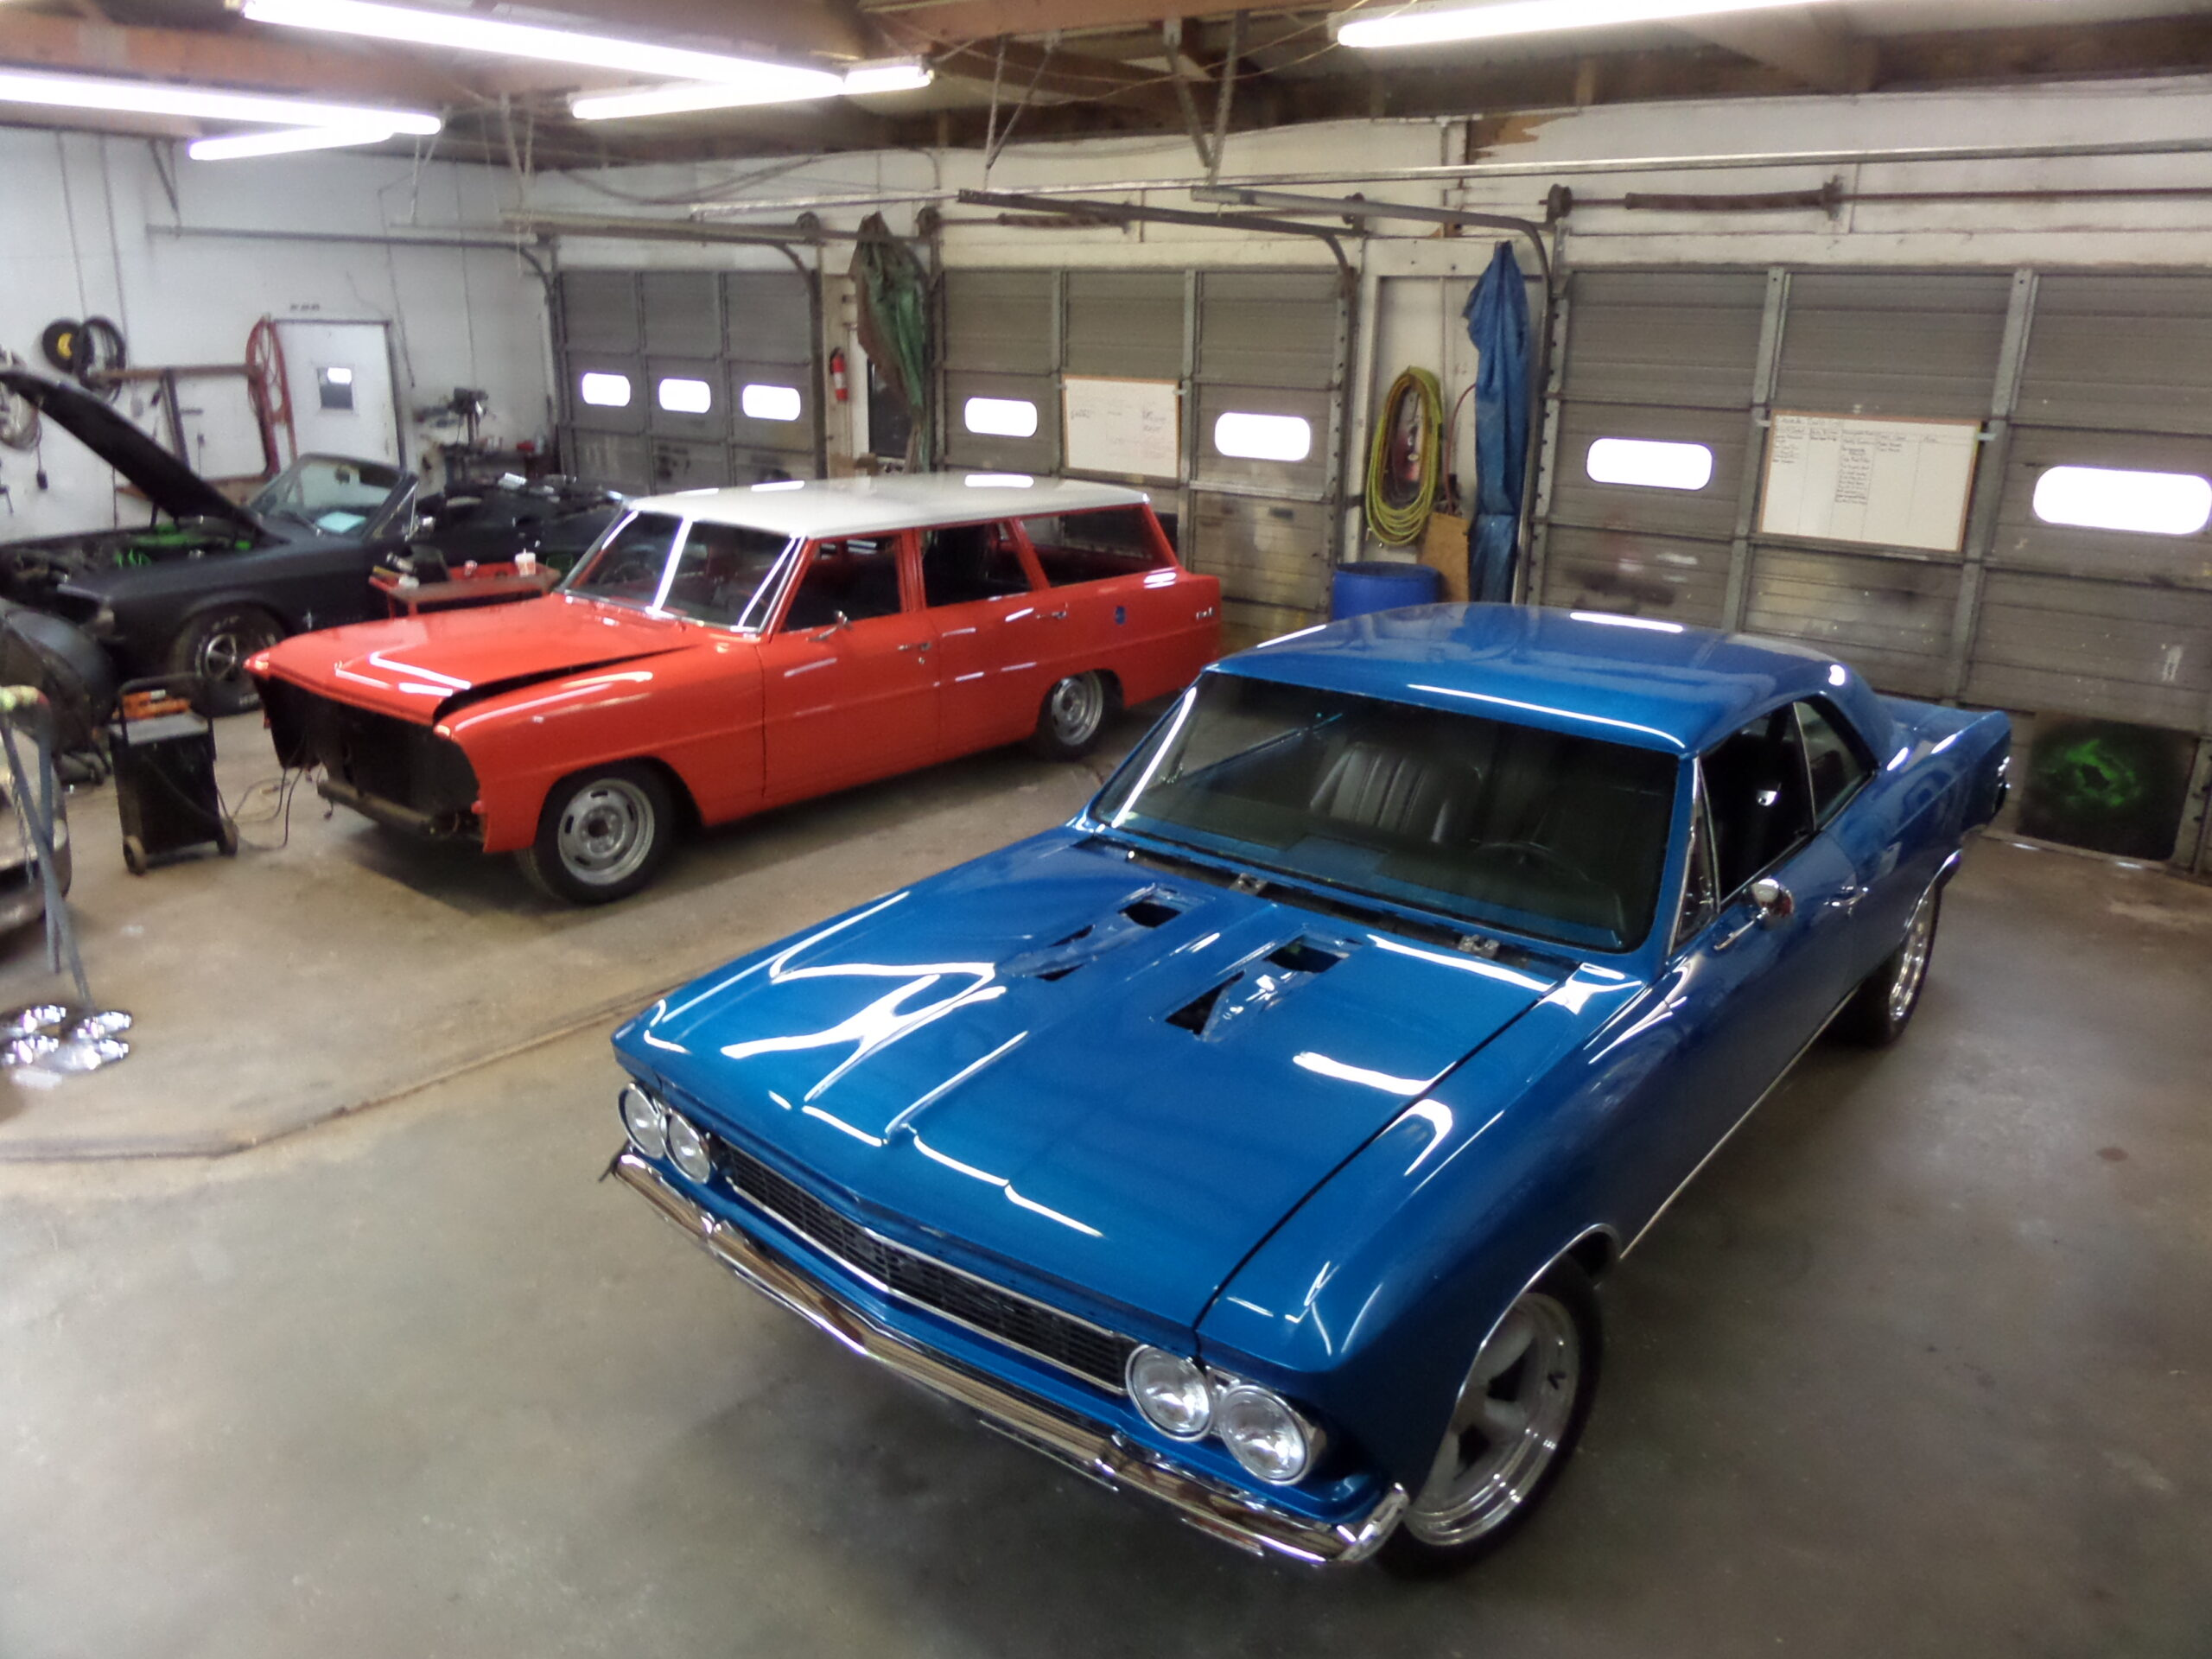 1966 CHEVELLE SS next to another custom